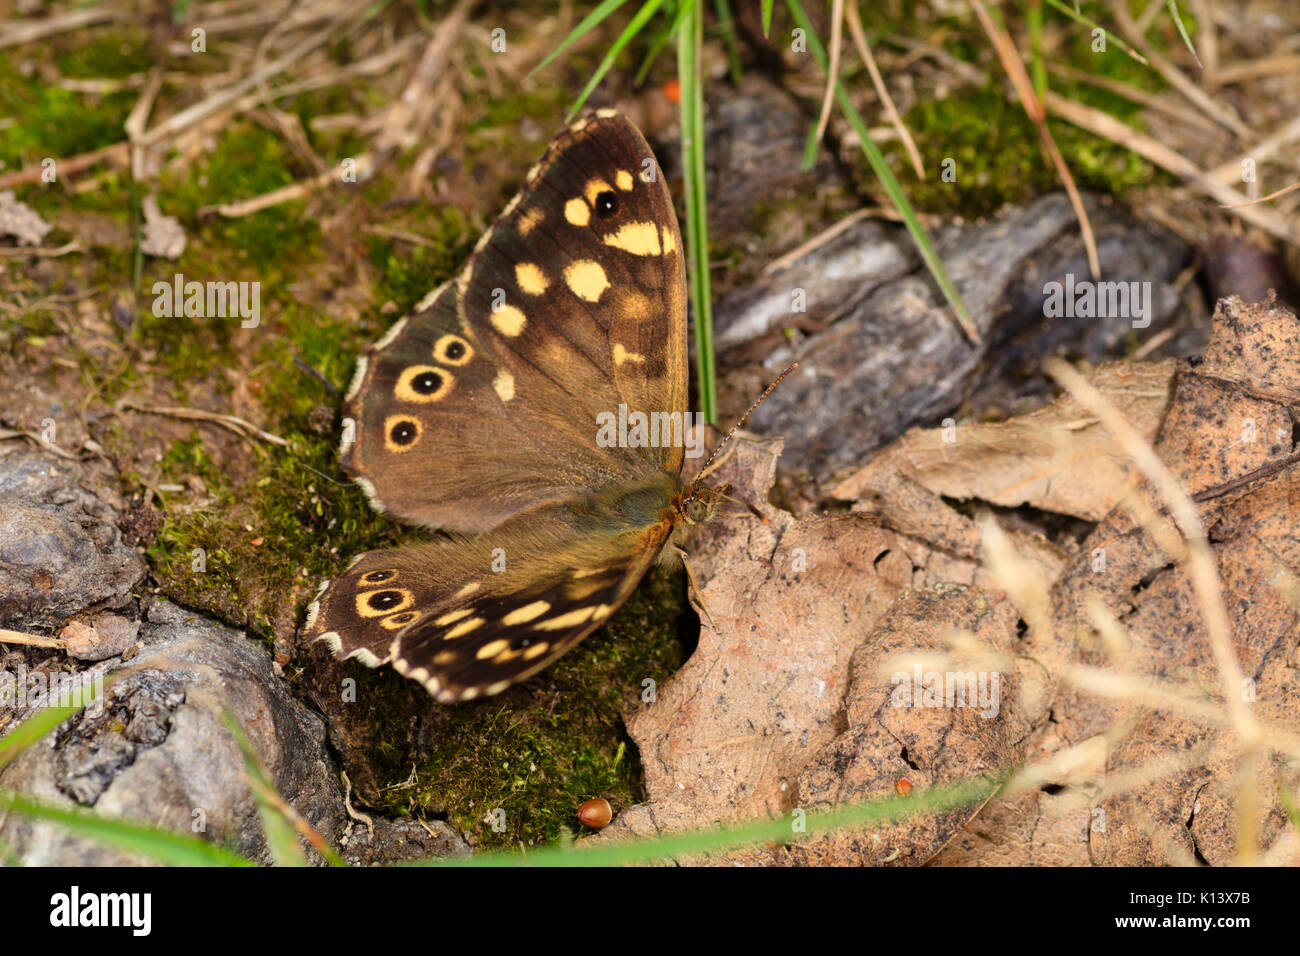 Speckled wood butterfly, Pararge aegeria, at rest and camouflaged among fallen leaves in a wood - Stock Image